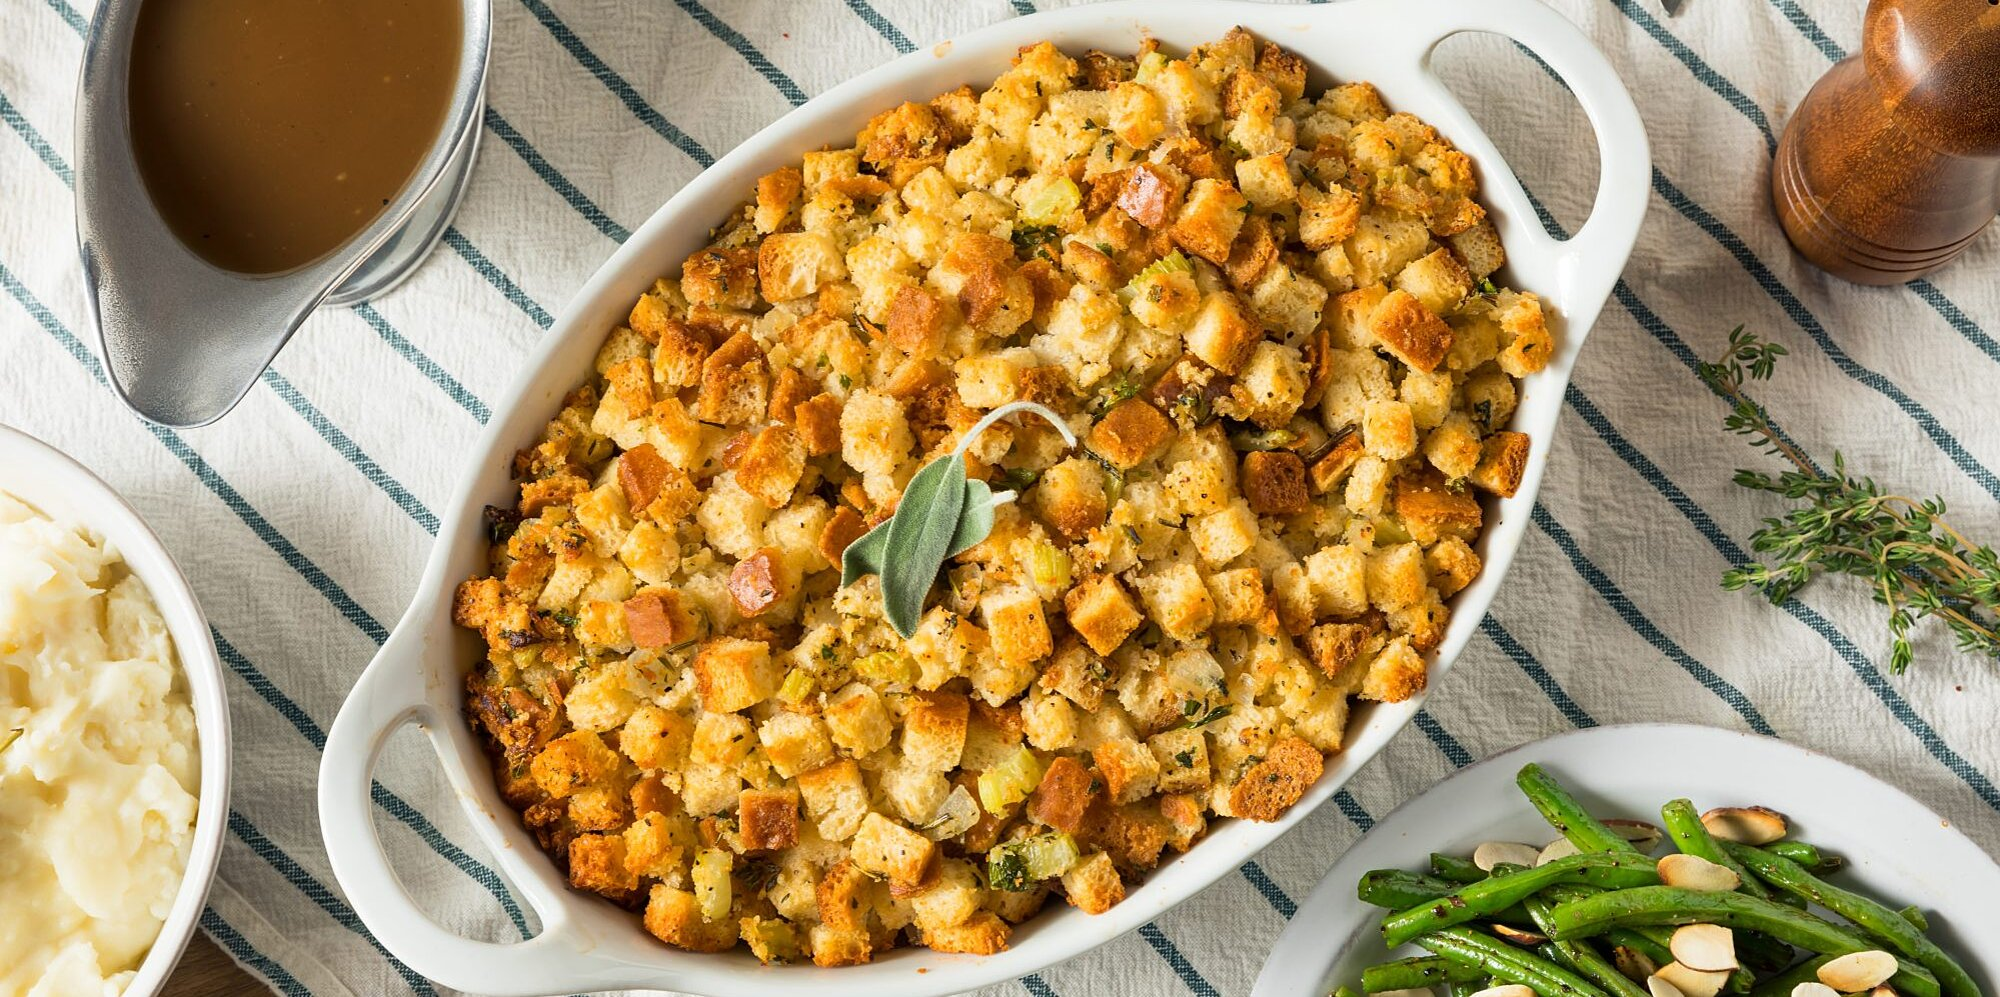 7 Show-Stopping Stuffing Recipes That Prove Why It's the Most Essential Thanksgiving Side